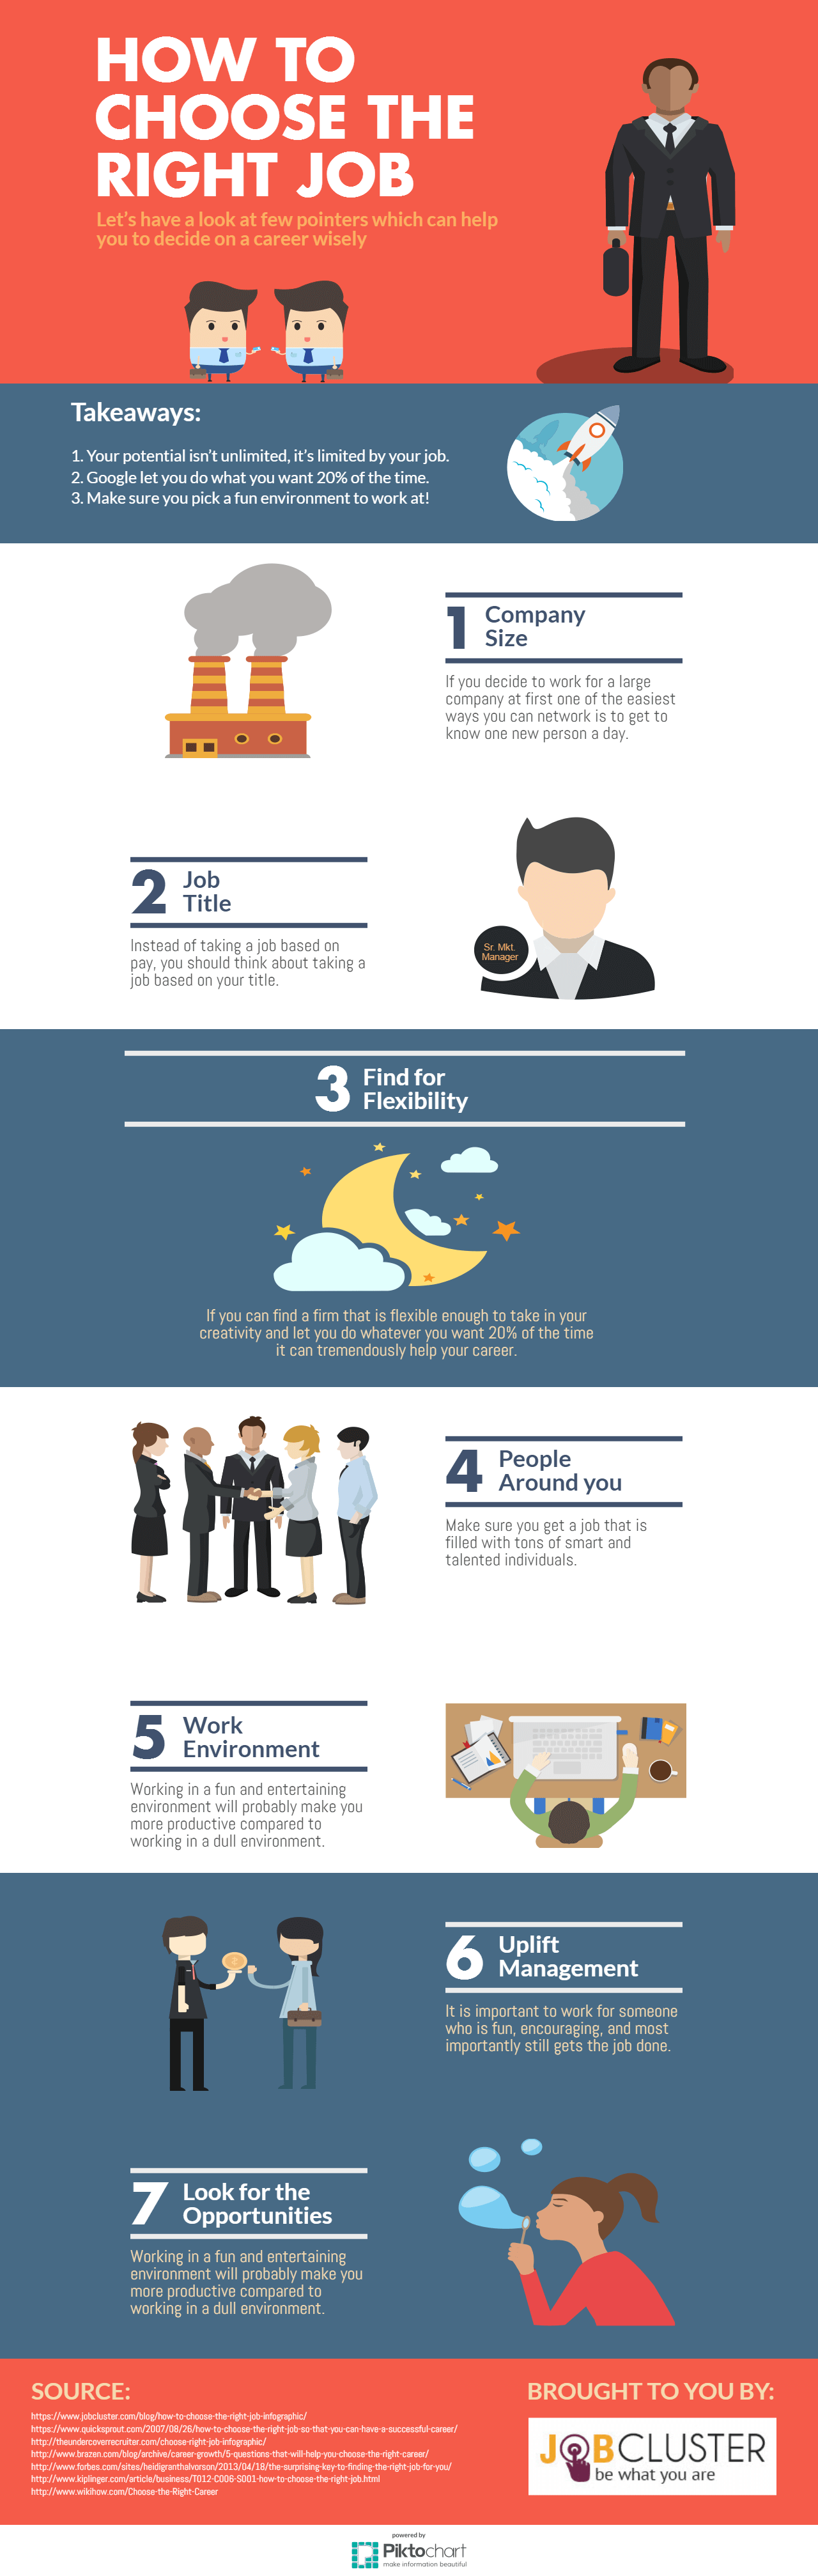 how to choose the right job- infographic